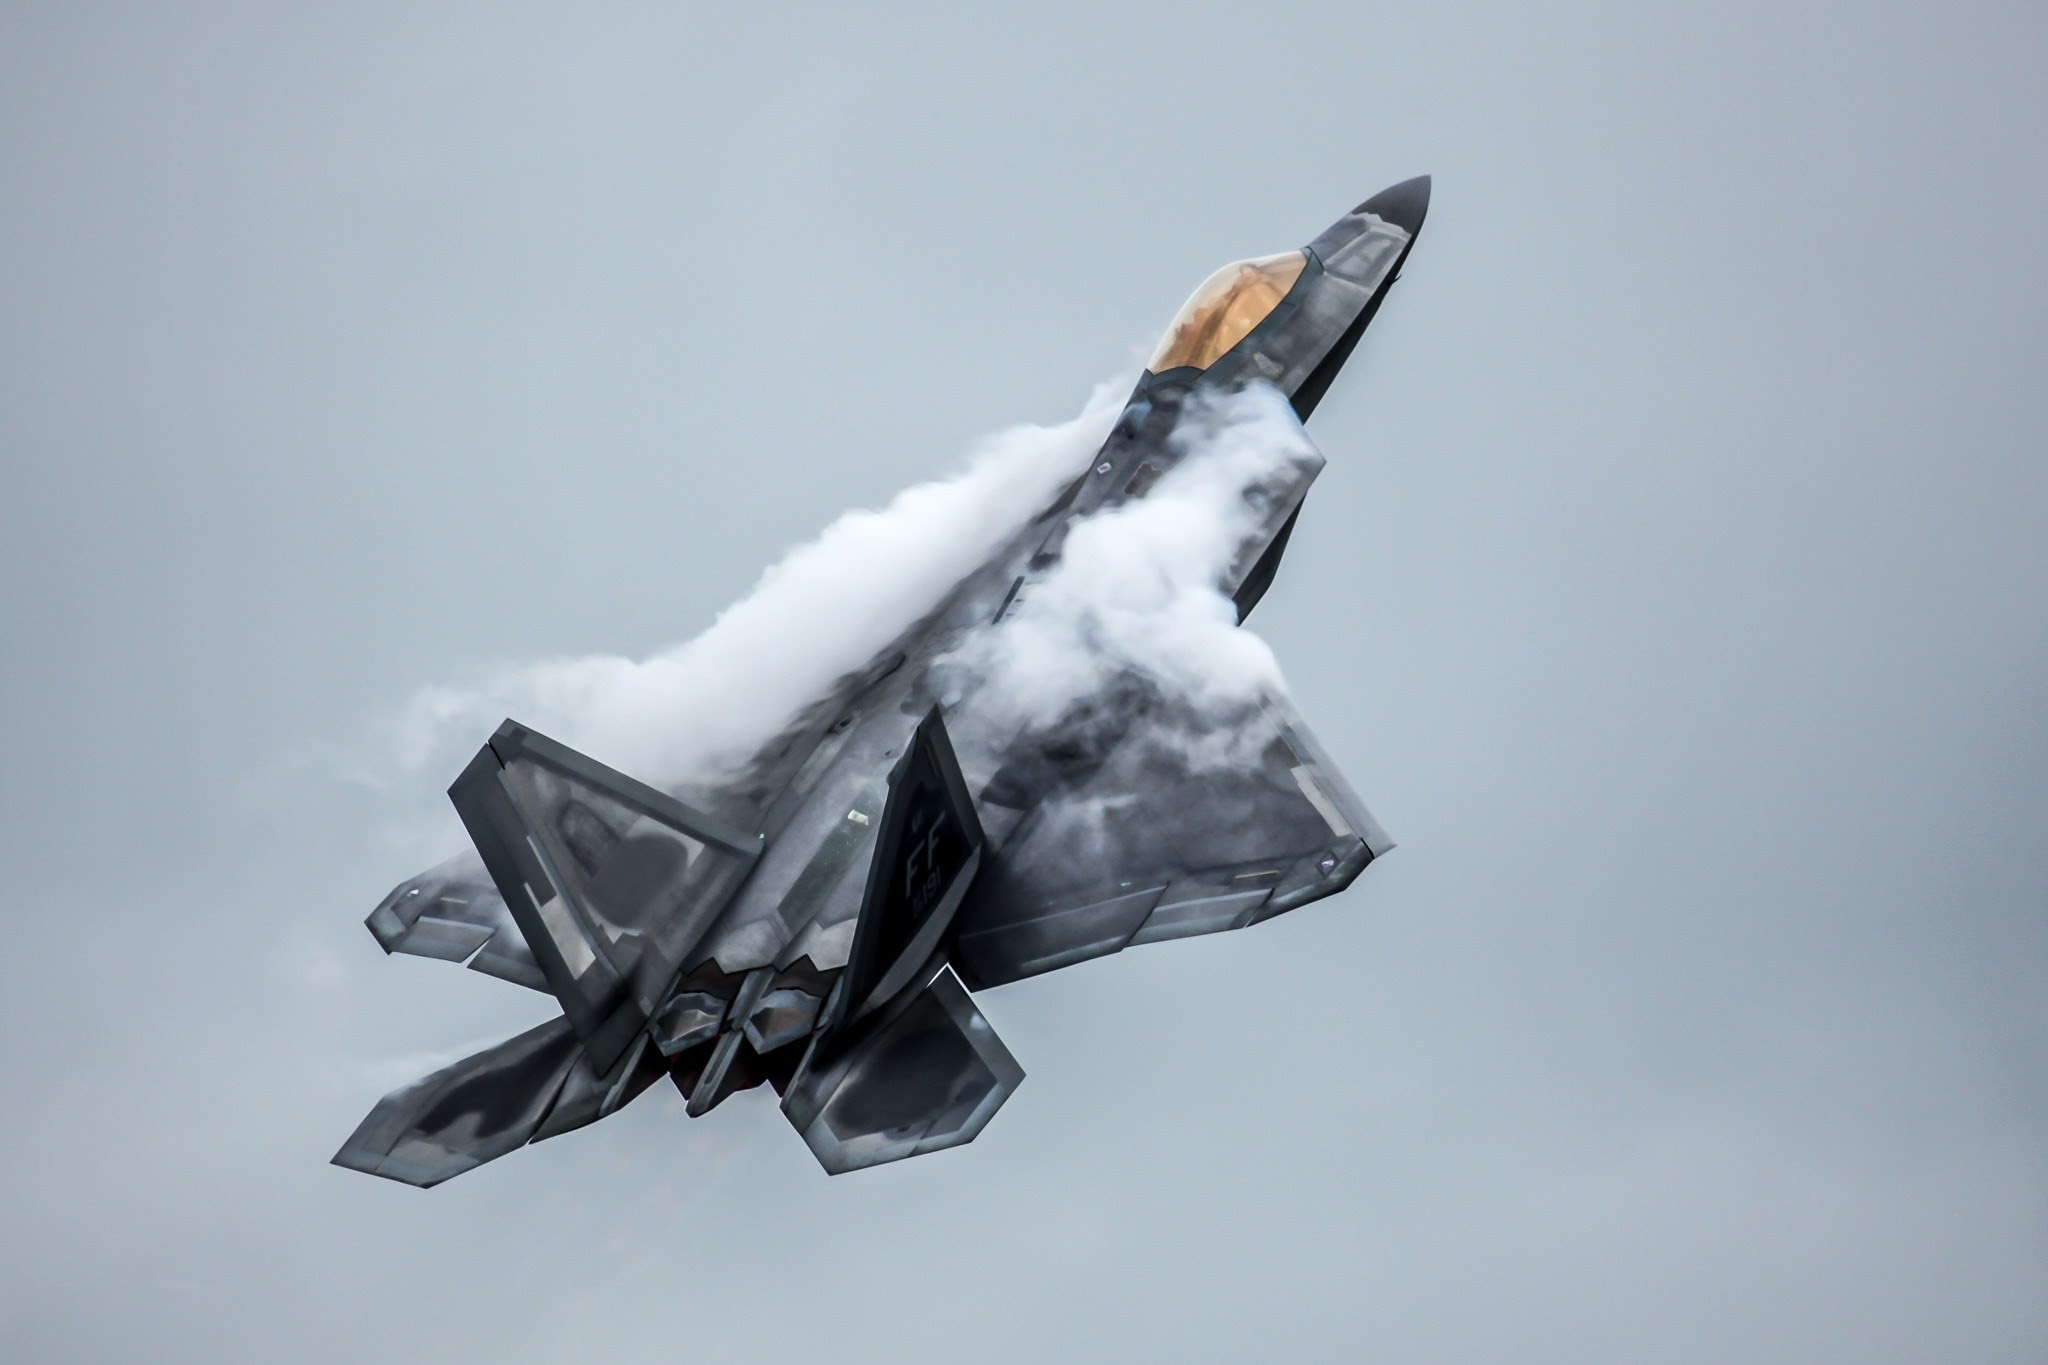 Aircraft Vehicle Military Military Aircraft F 22 Raptor